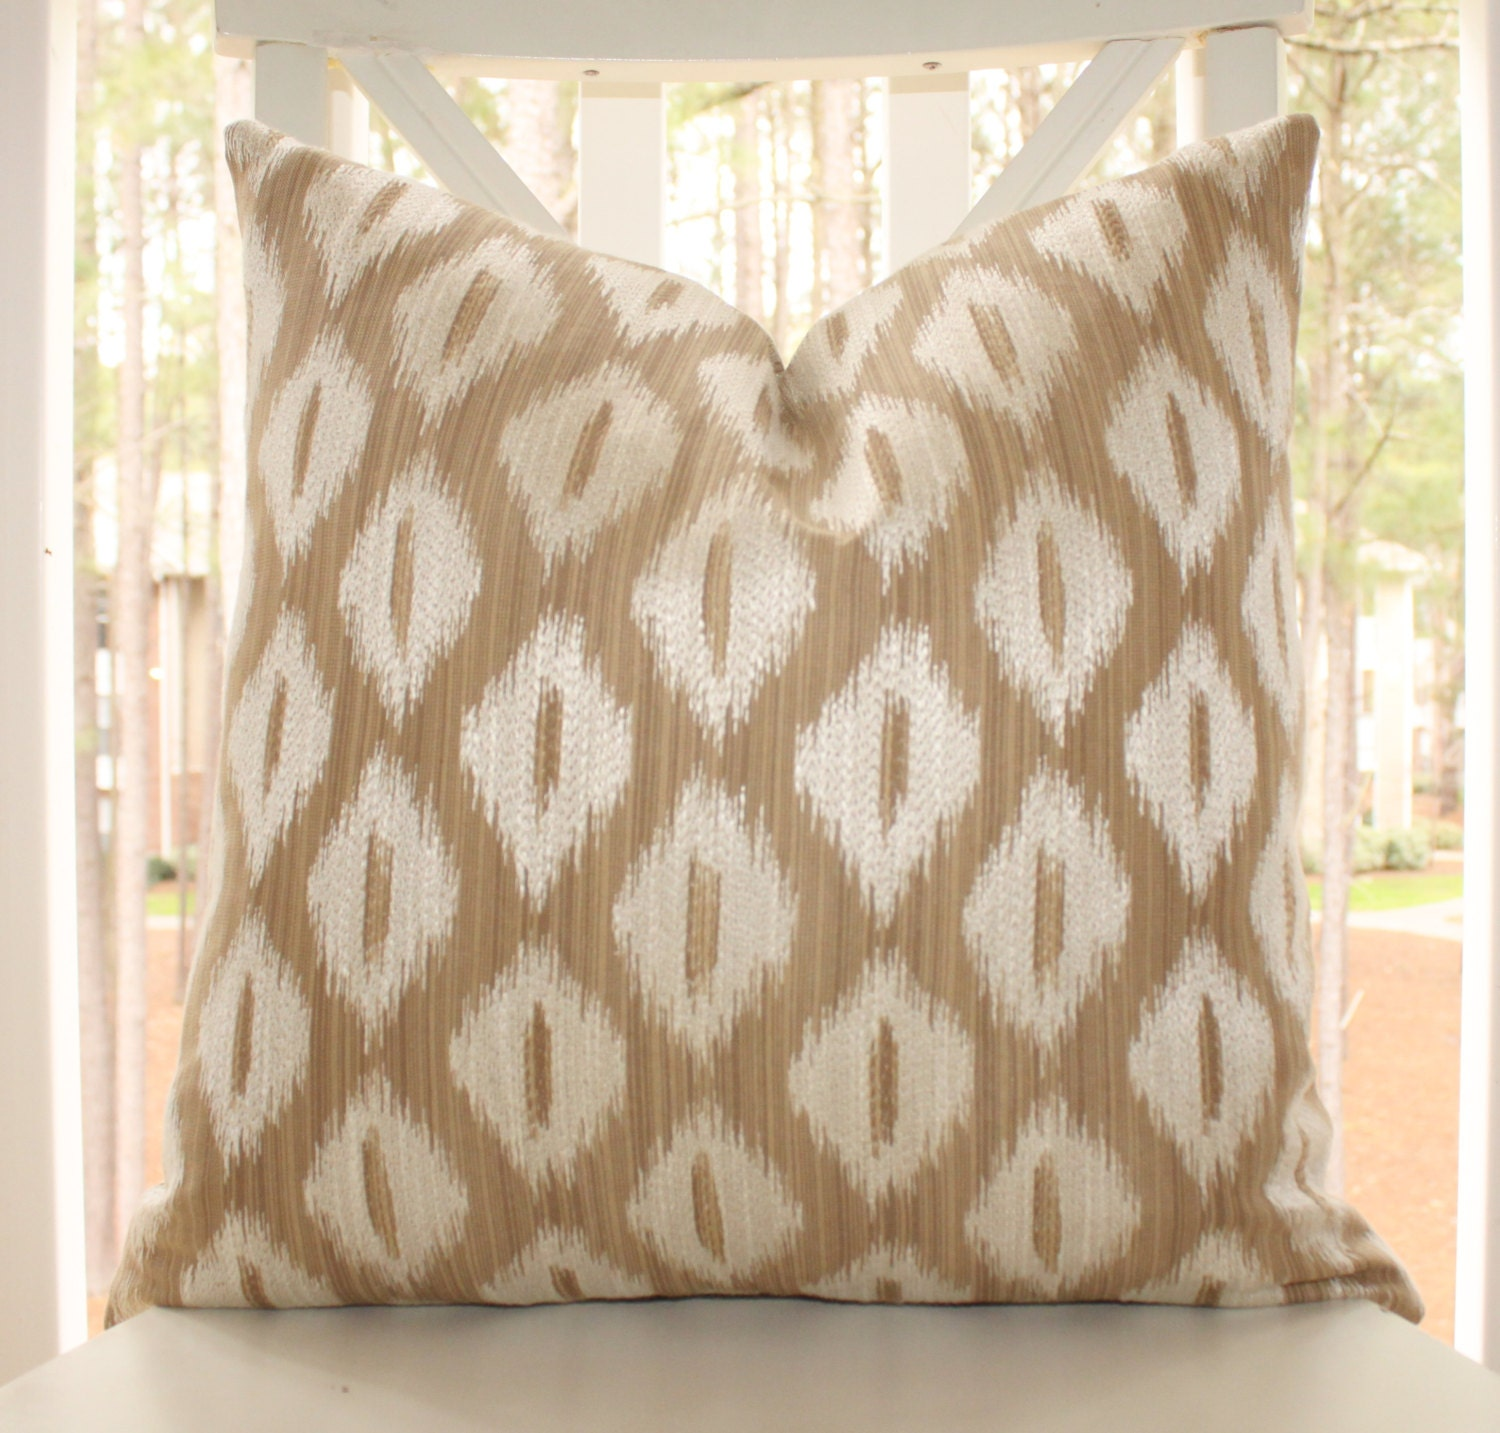 Throw Pillows Tan : Designer Taupe Beige Ikat Pillow Tan Ikat Diamond Geometric